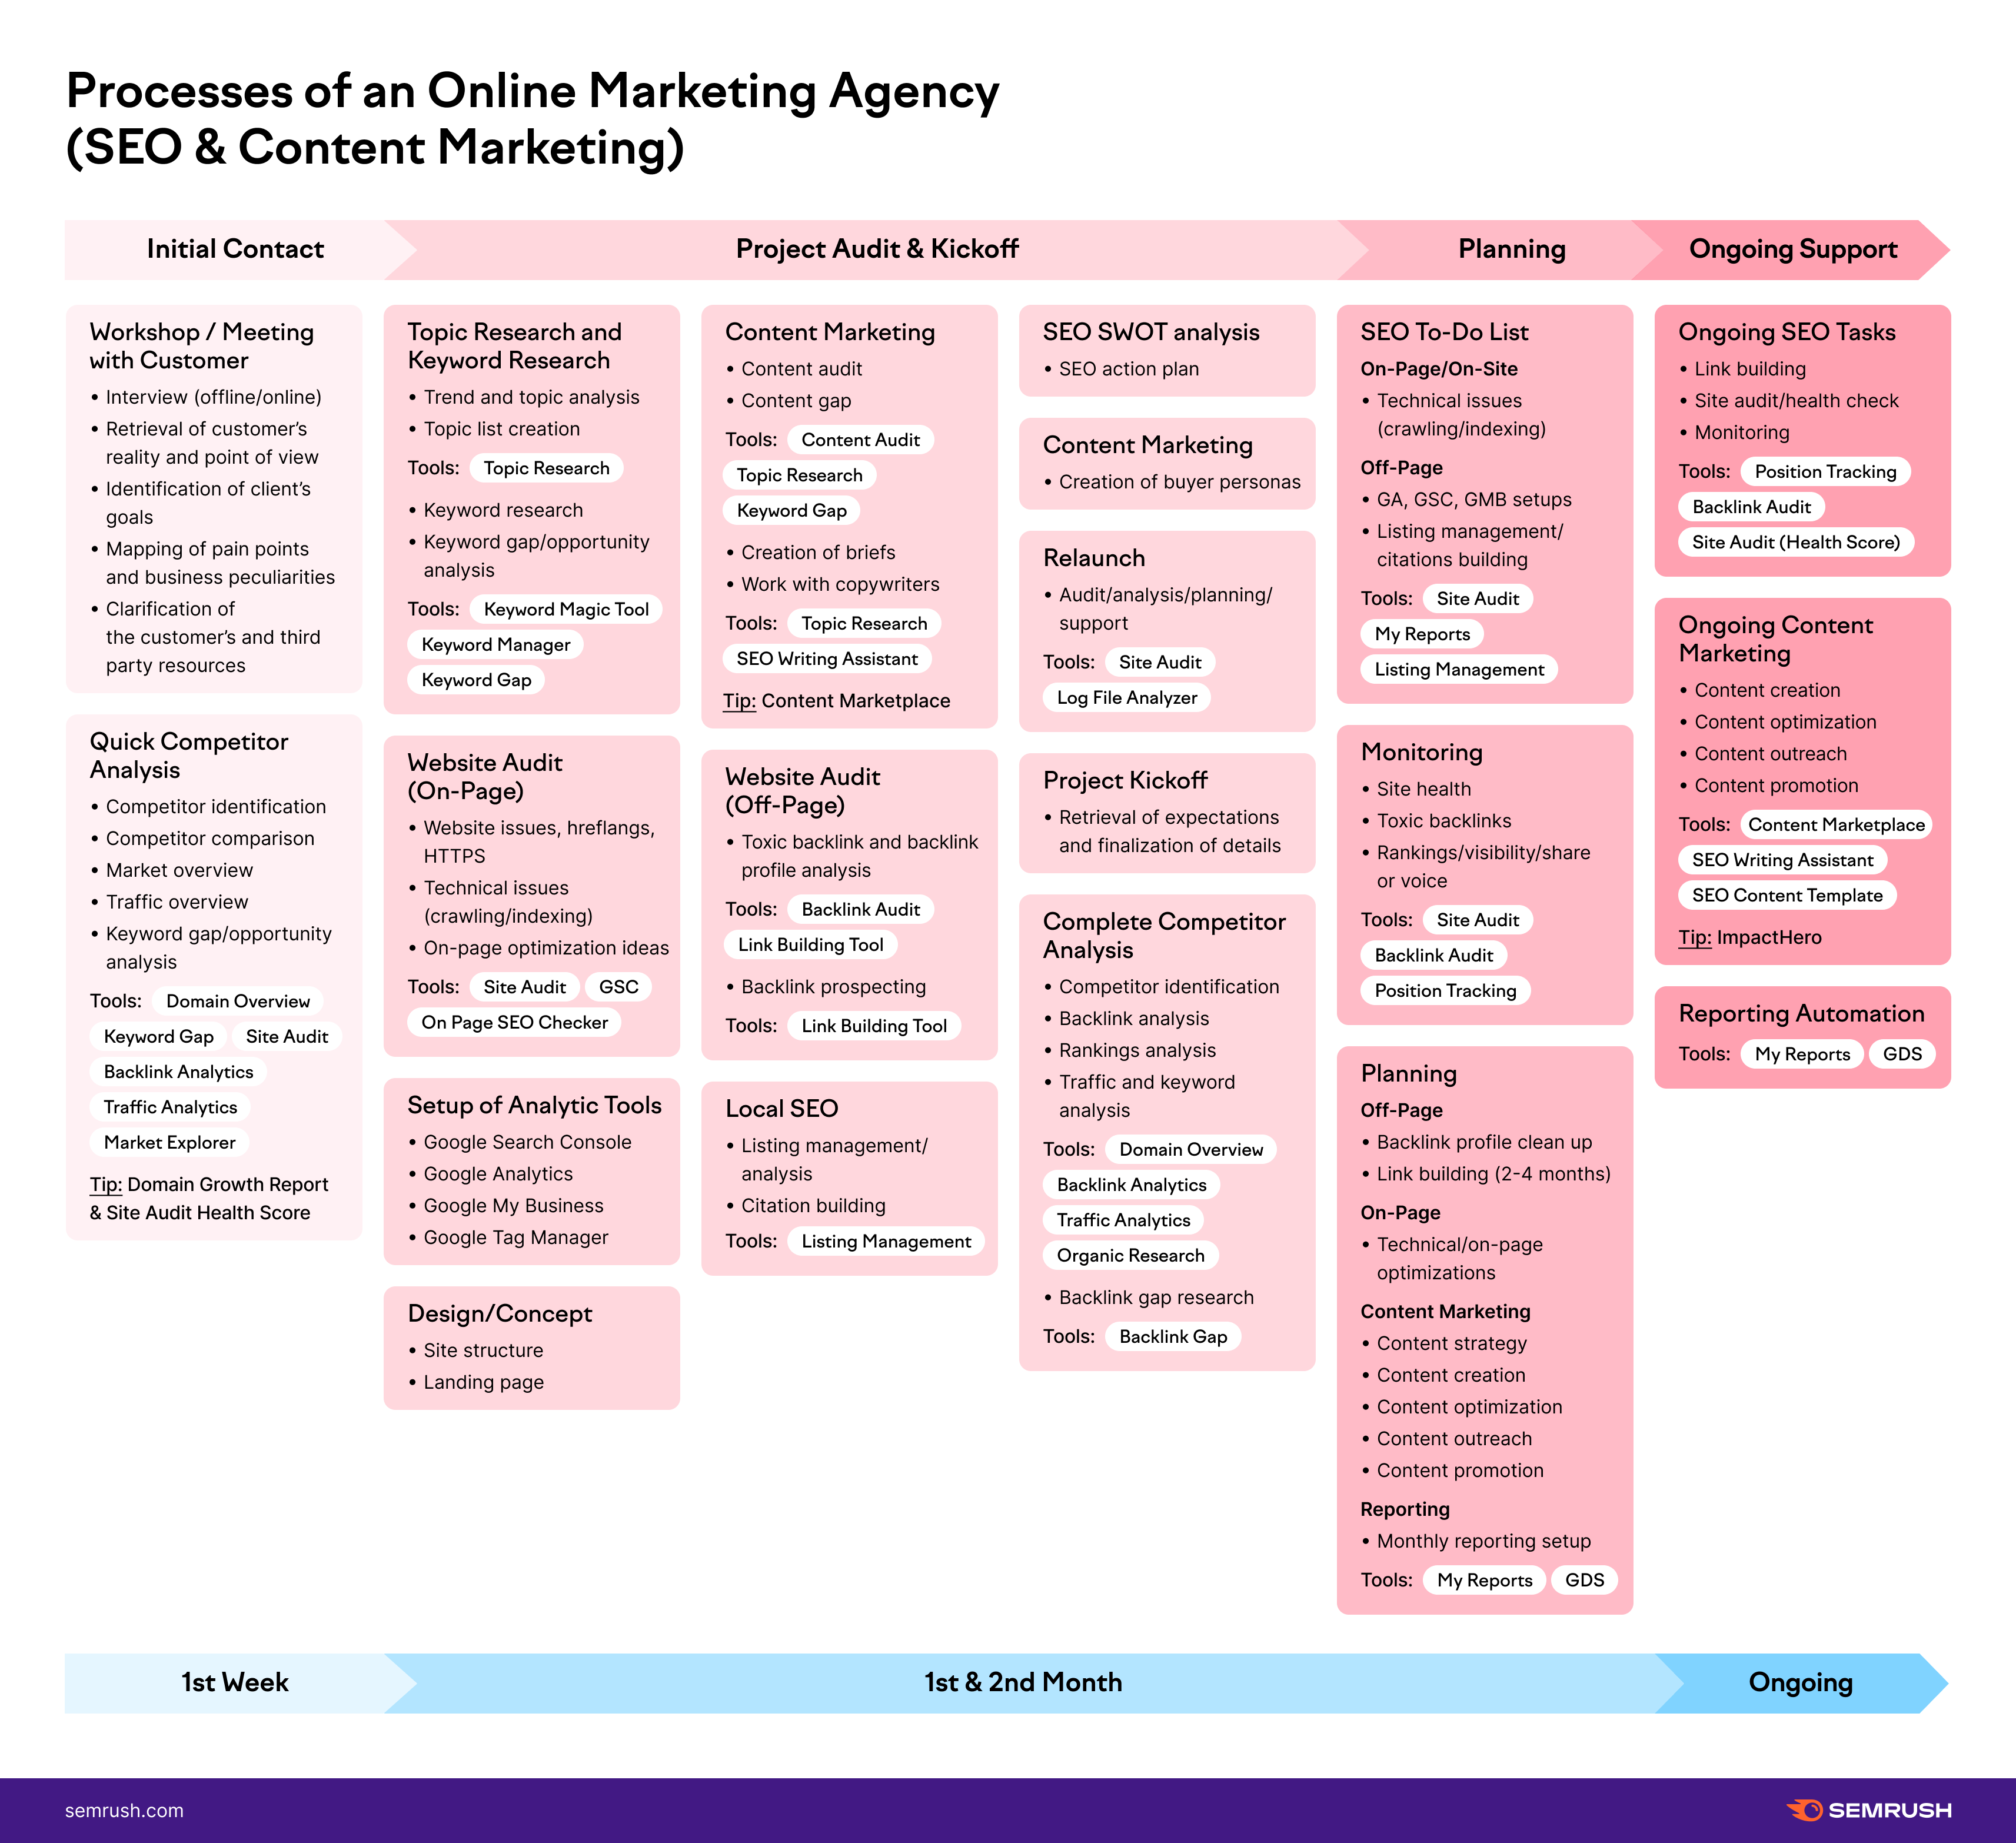 Processes Online Marketing Agency